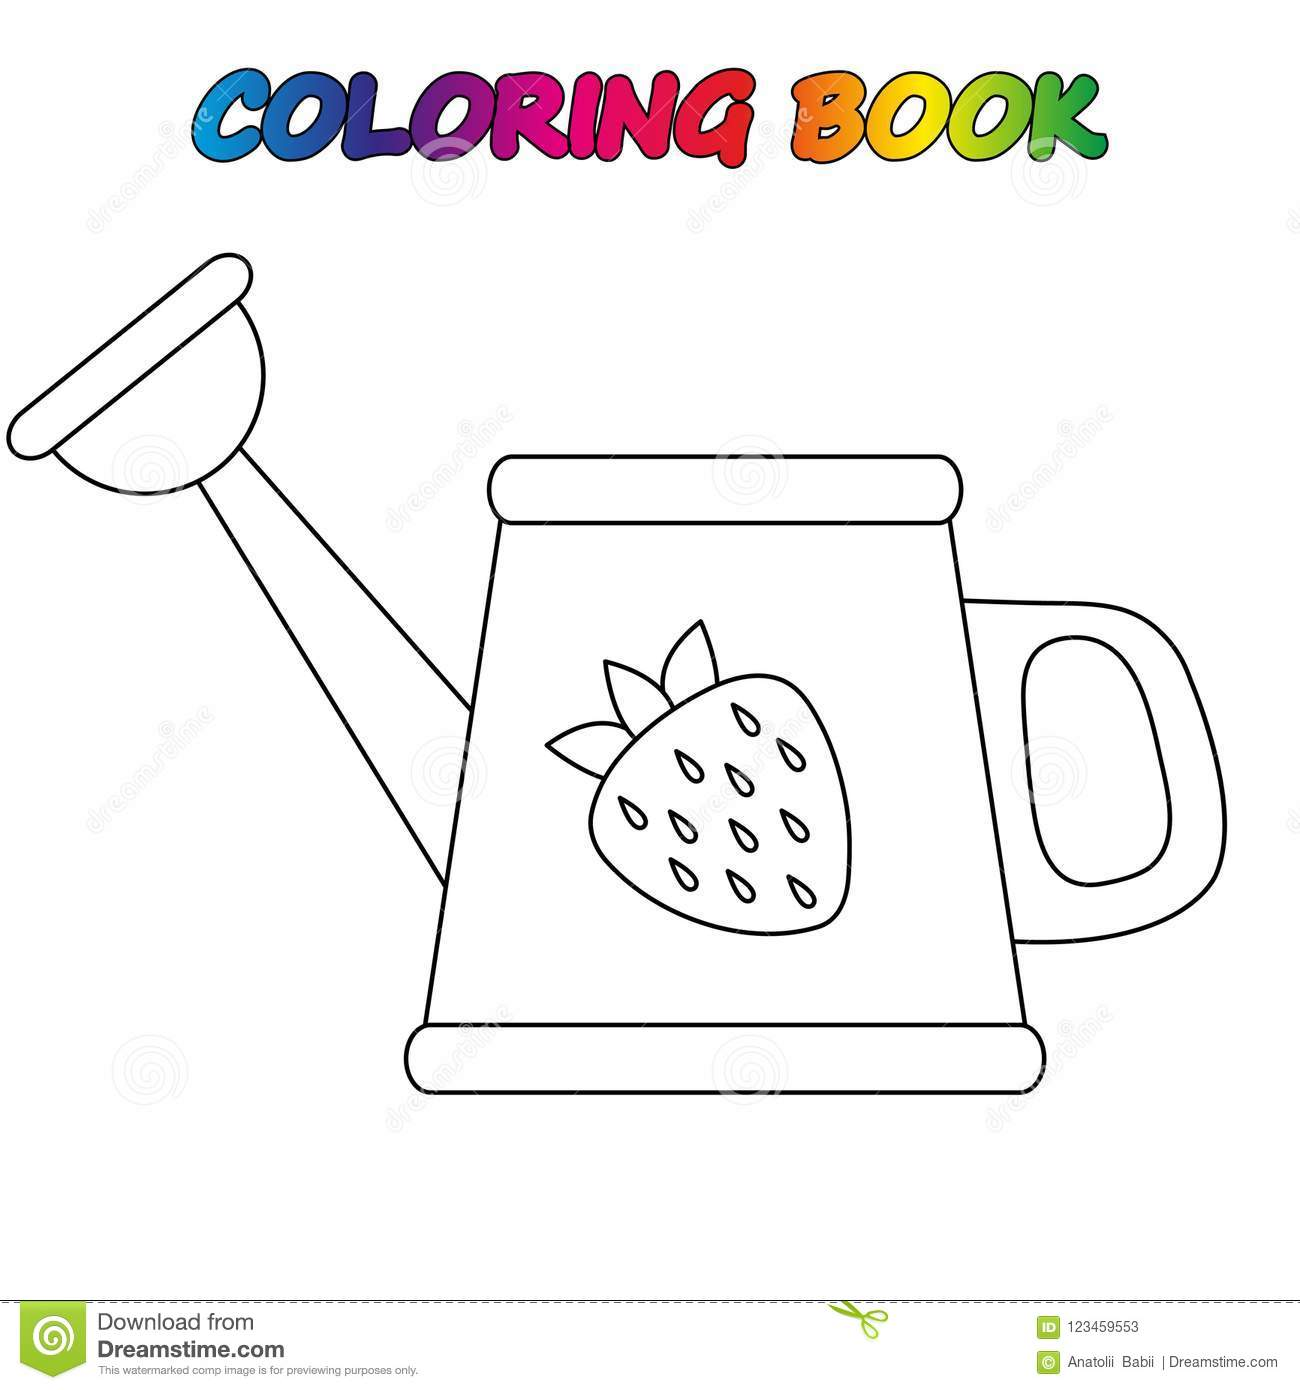 Coloring Page Worksheet Game For Kids